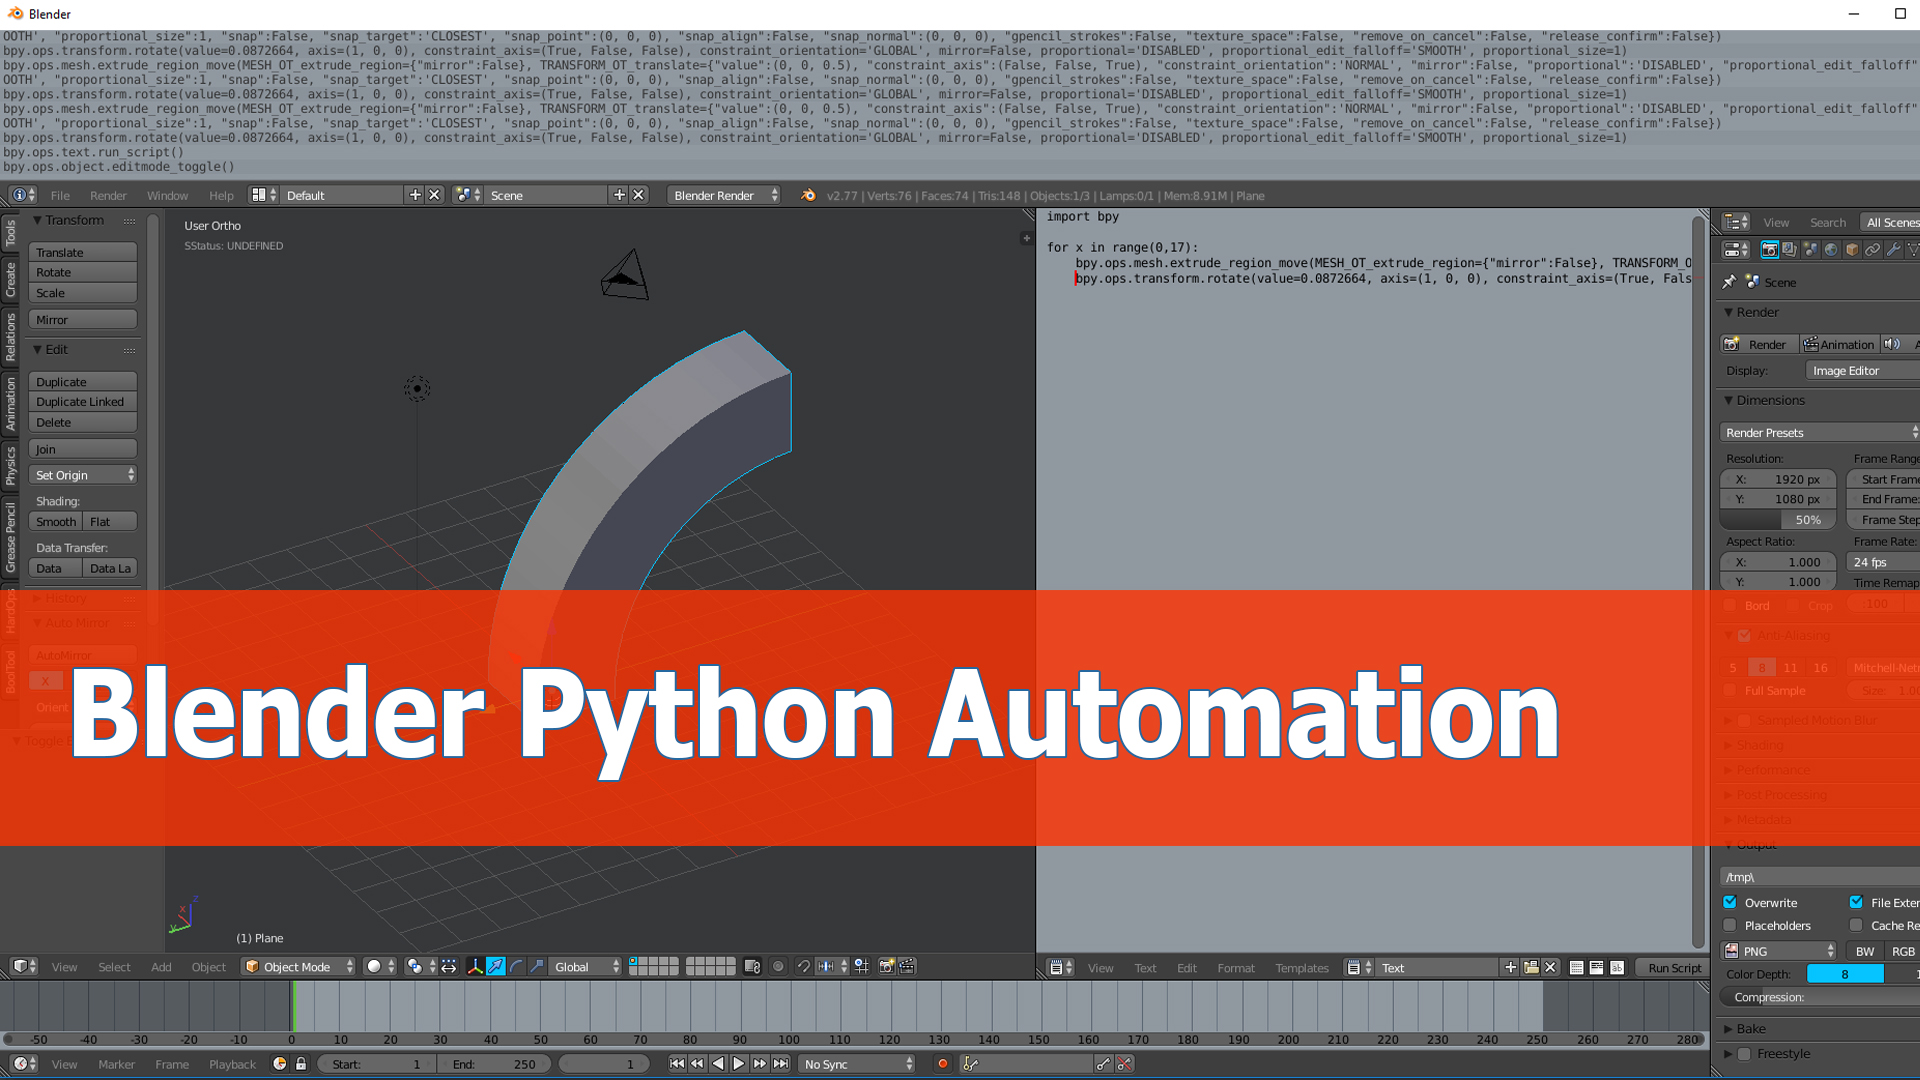 Blender Python tutorial: Automation of operations